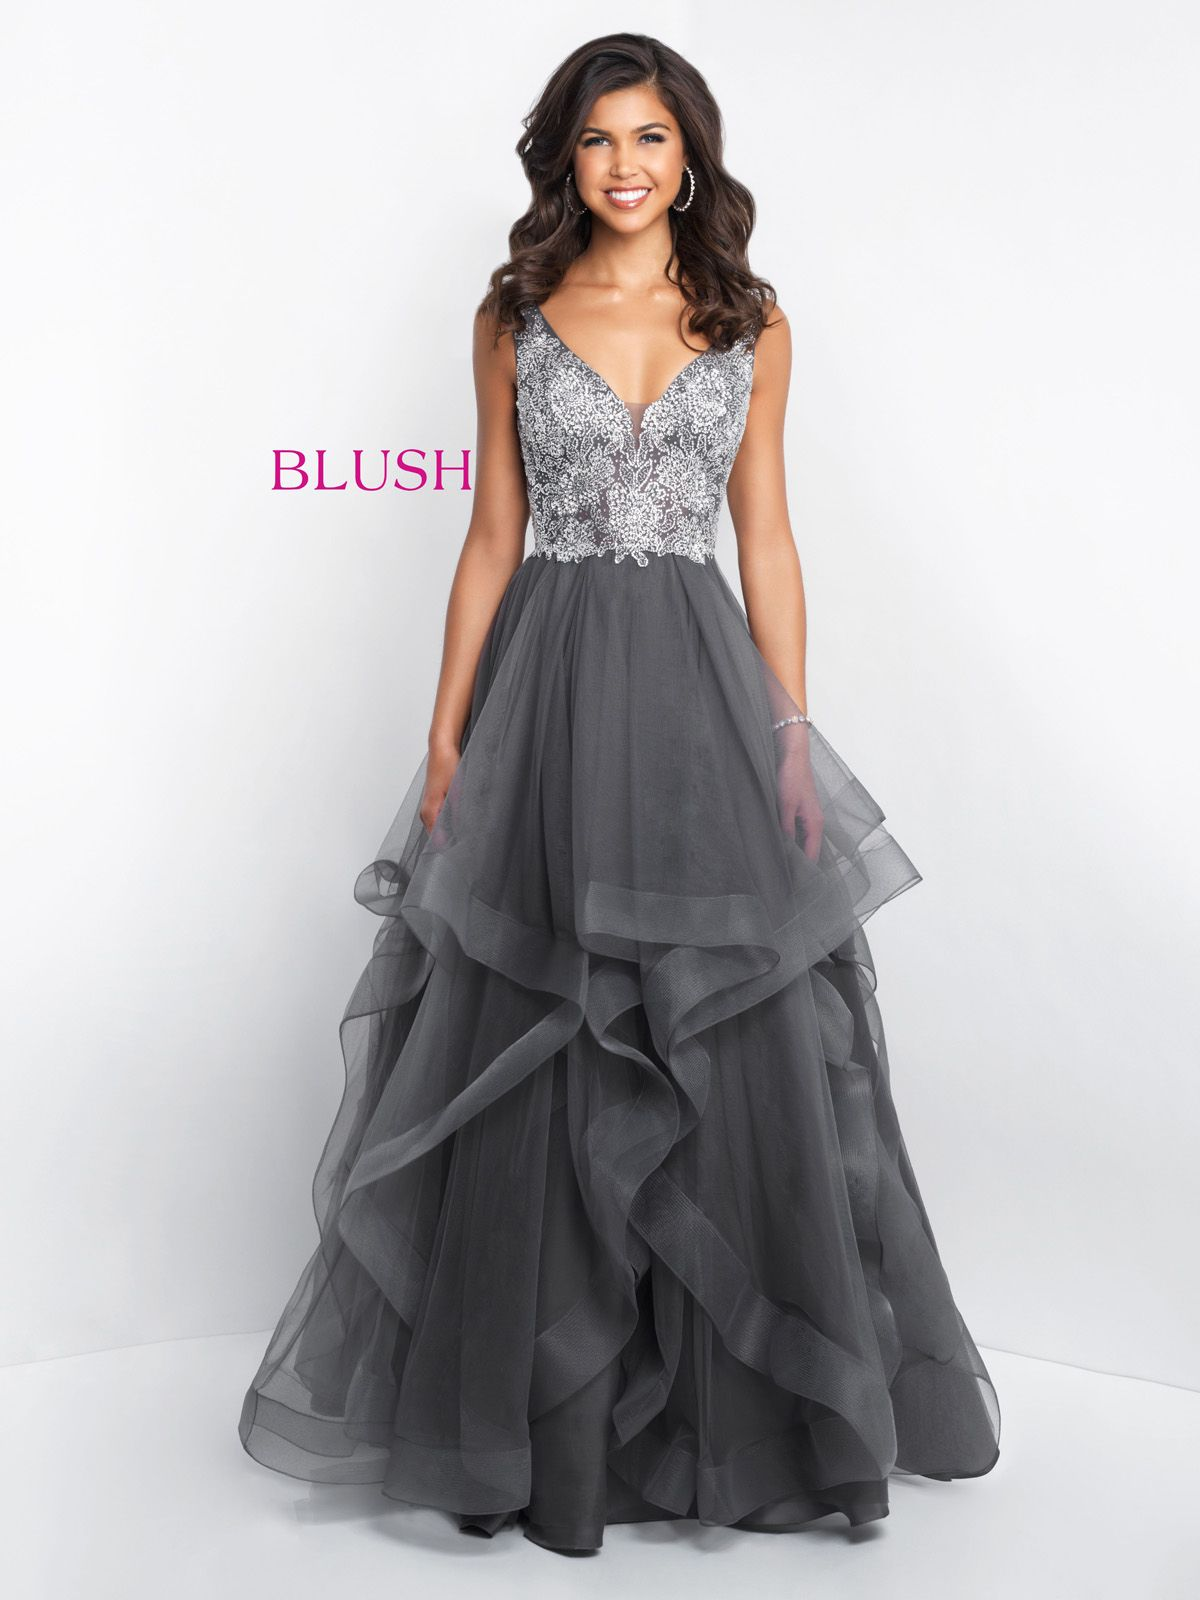 f542838a7c0 Blush Prom 5653- International Prom Association Dresses